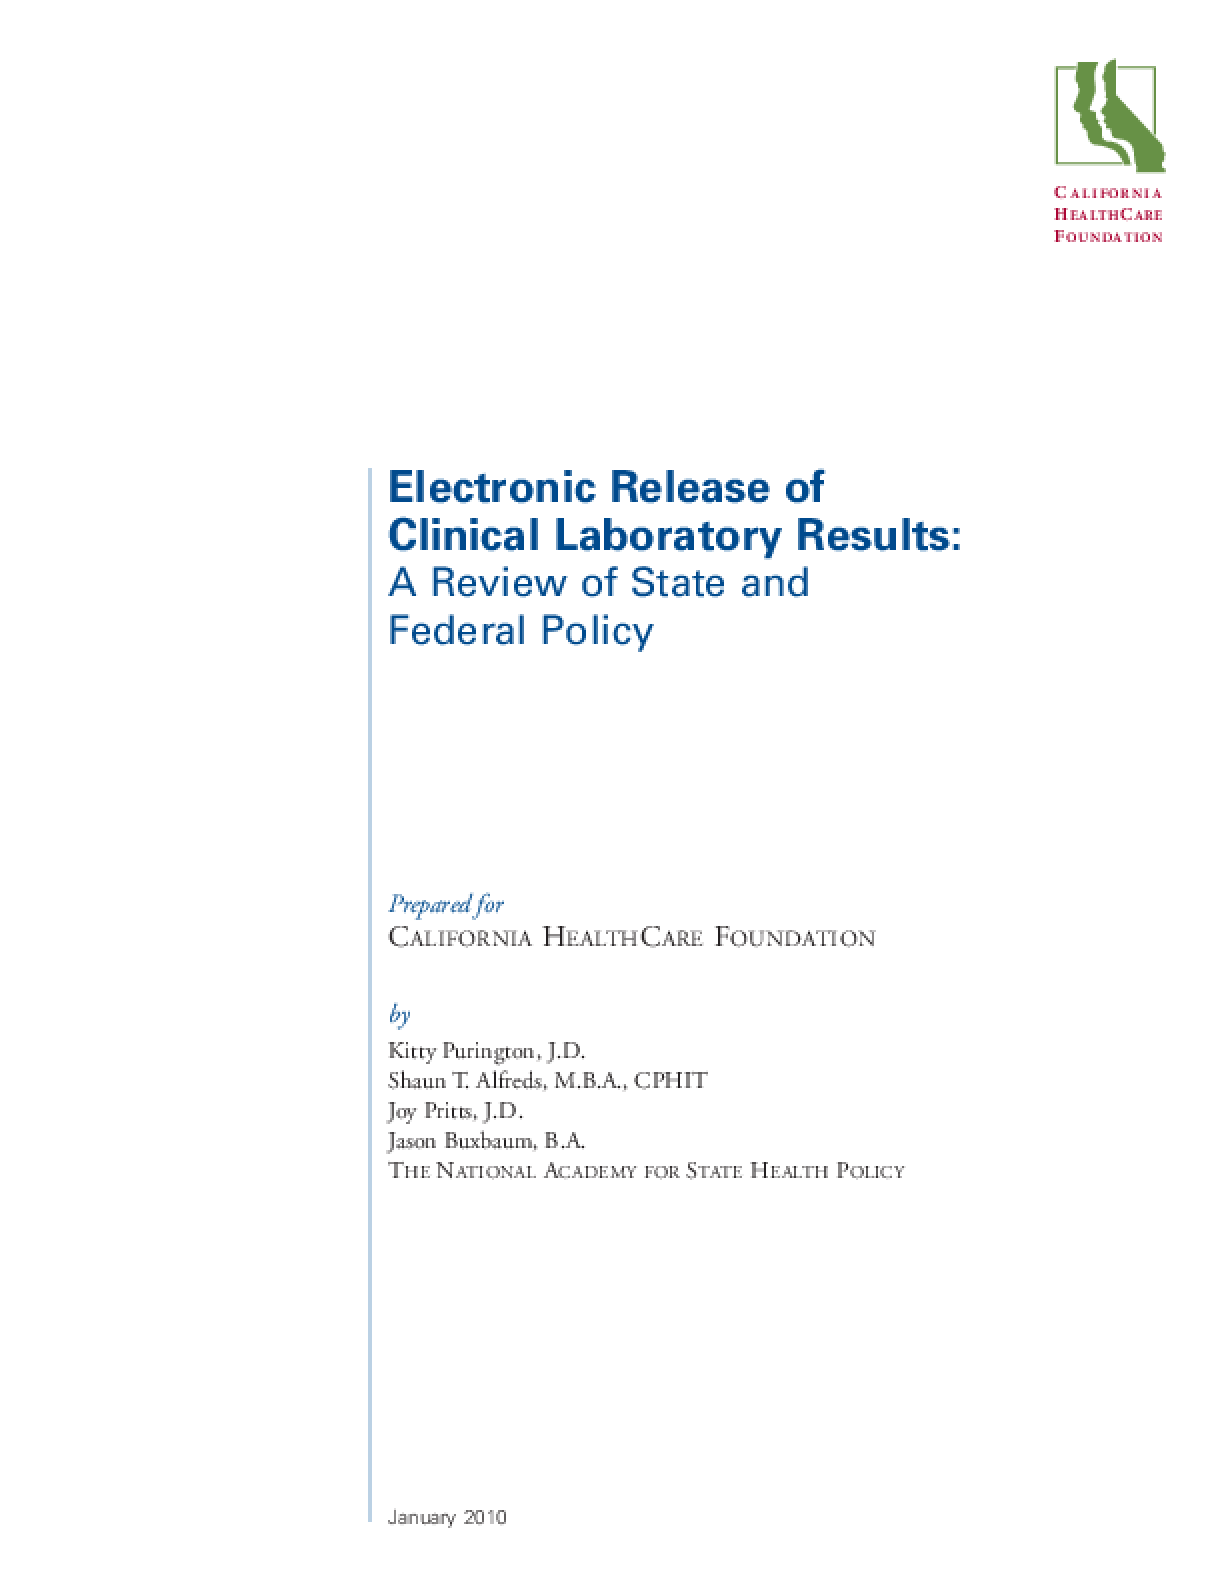 Electronic Release of Clinical Laboratory Results: A Review of State and Federal Policy